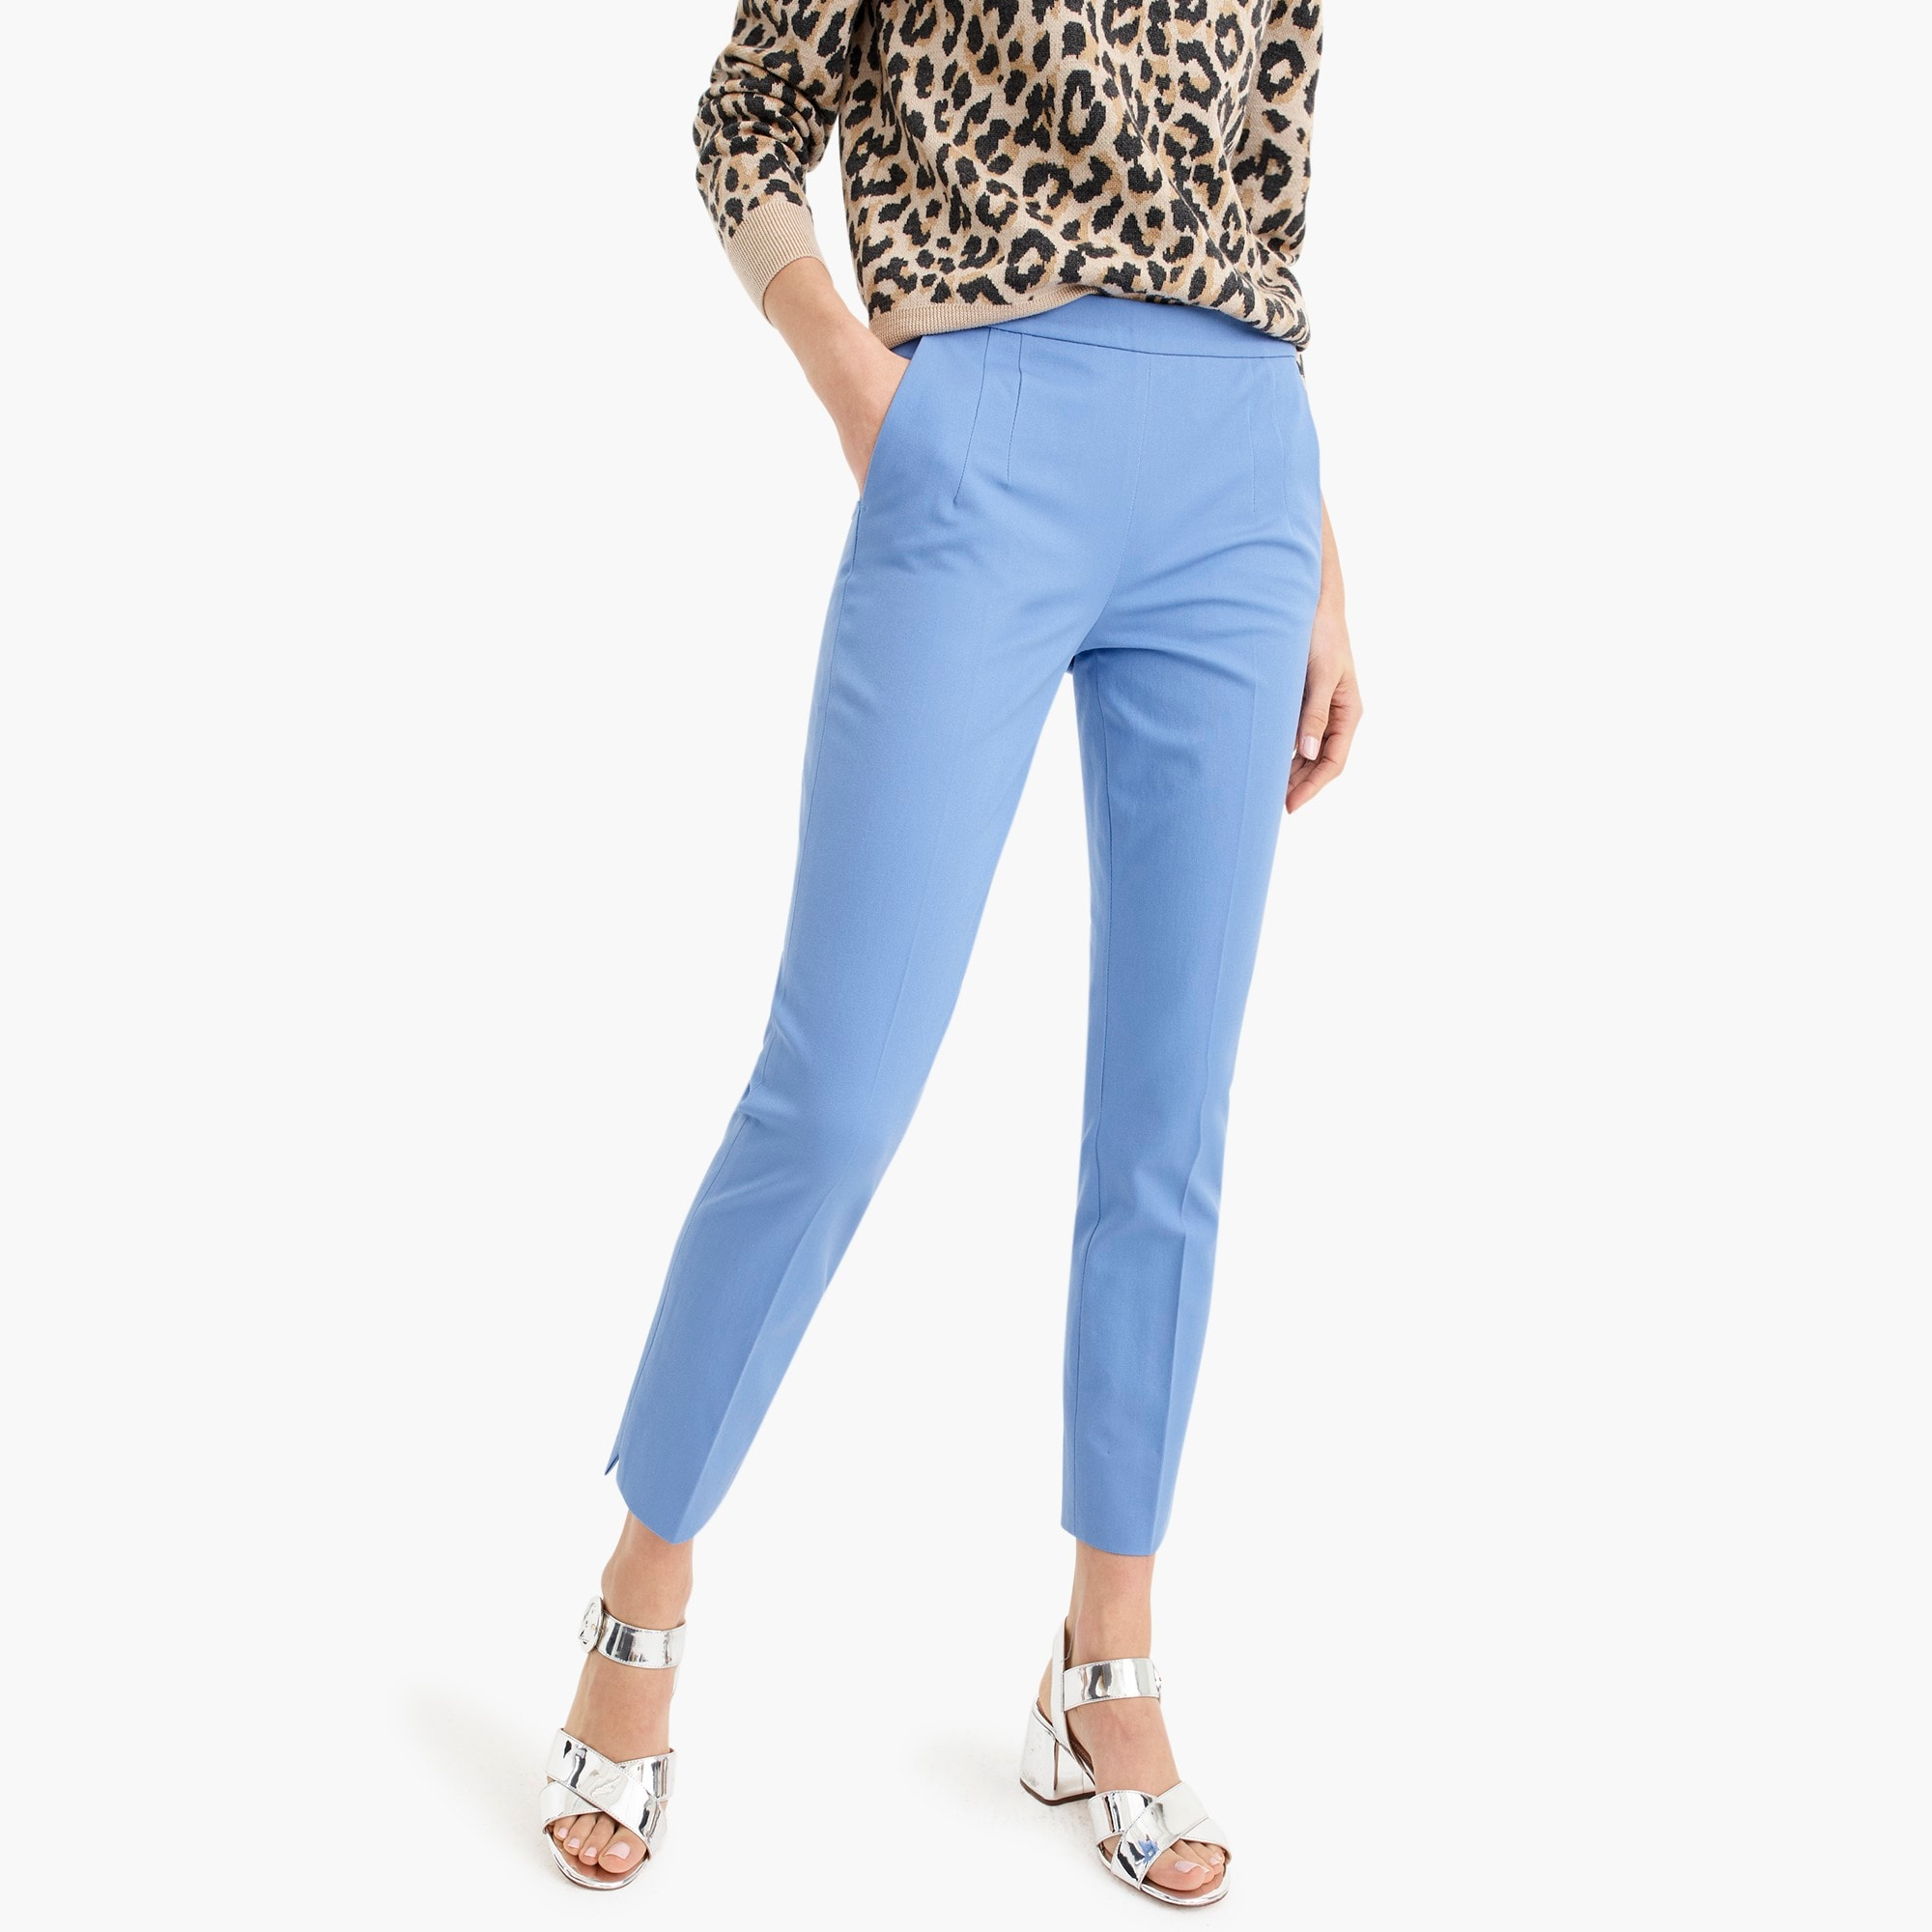 martie slim crop pant in two-way stretch cotton with side zip